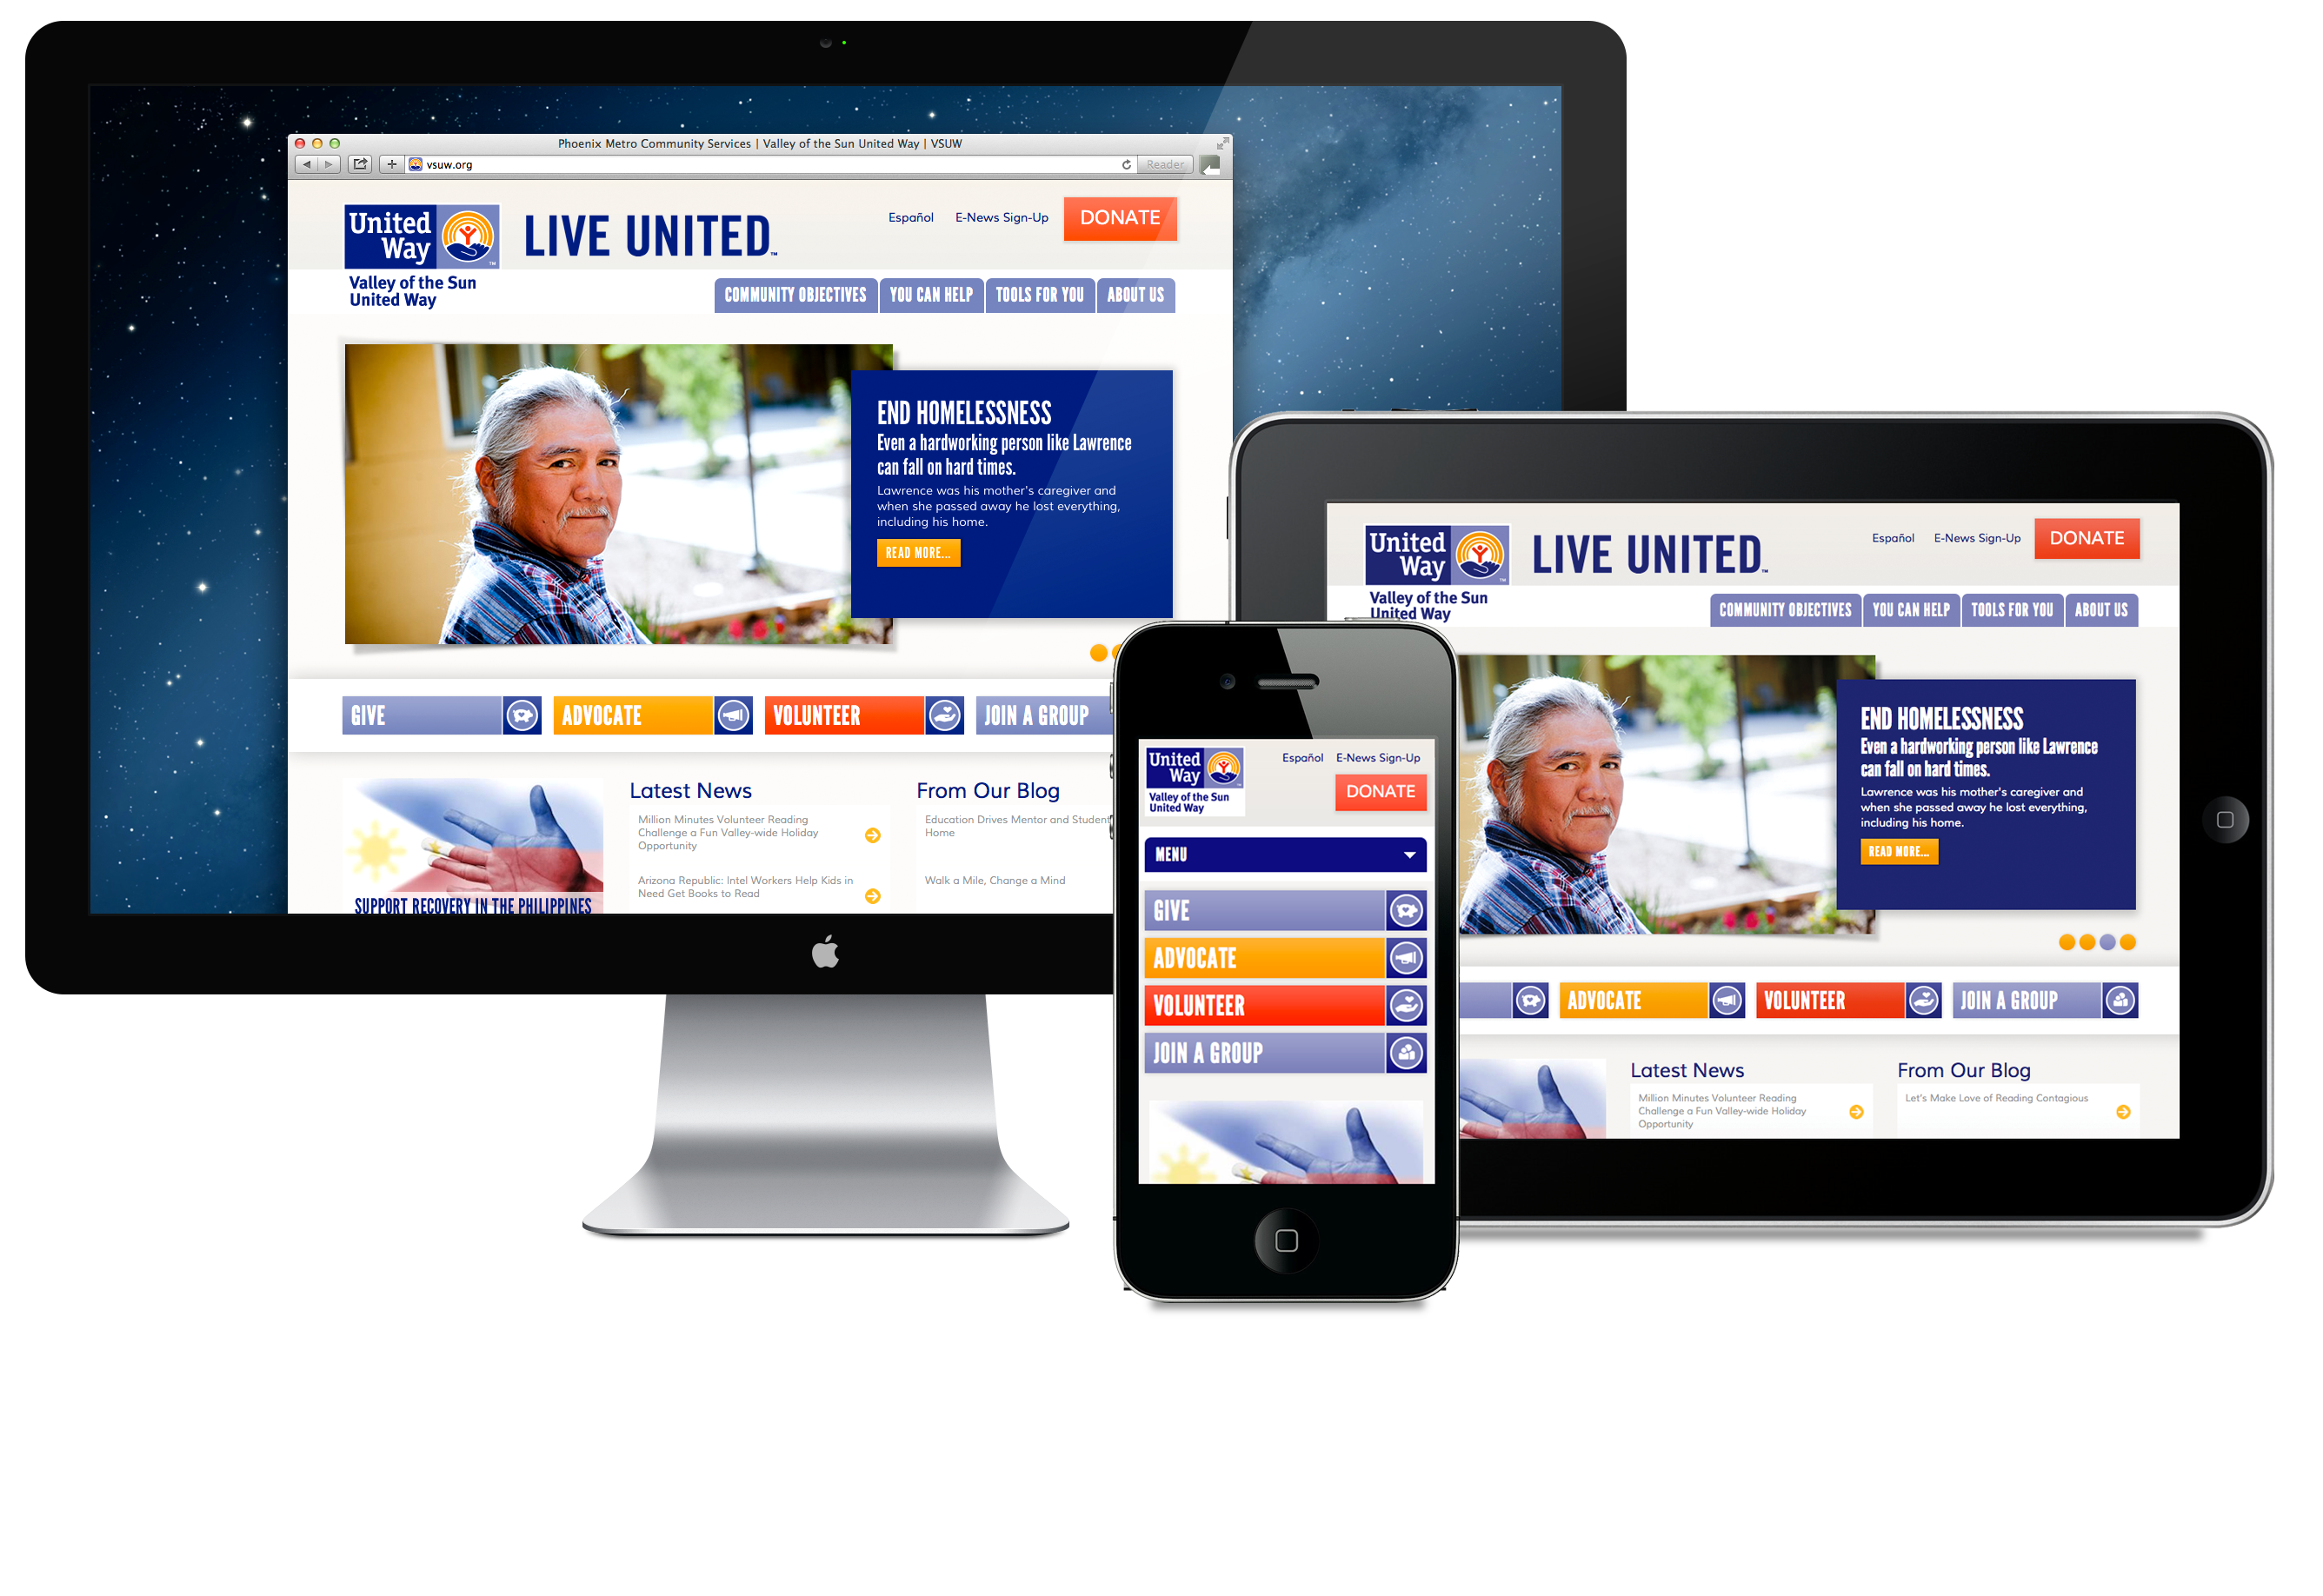 Phoenix Arizona United Way website design